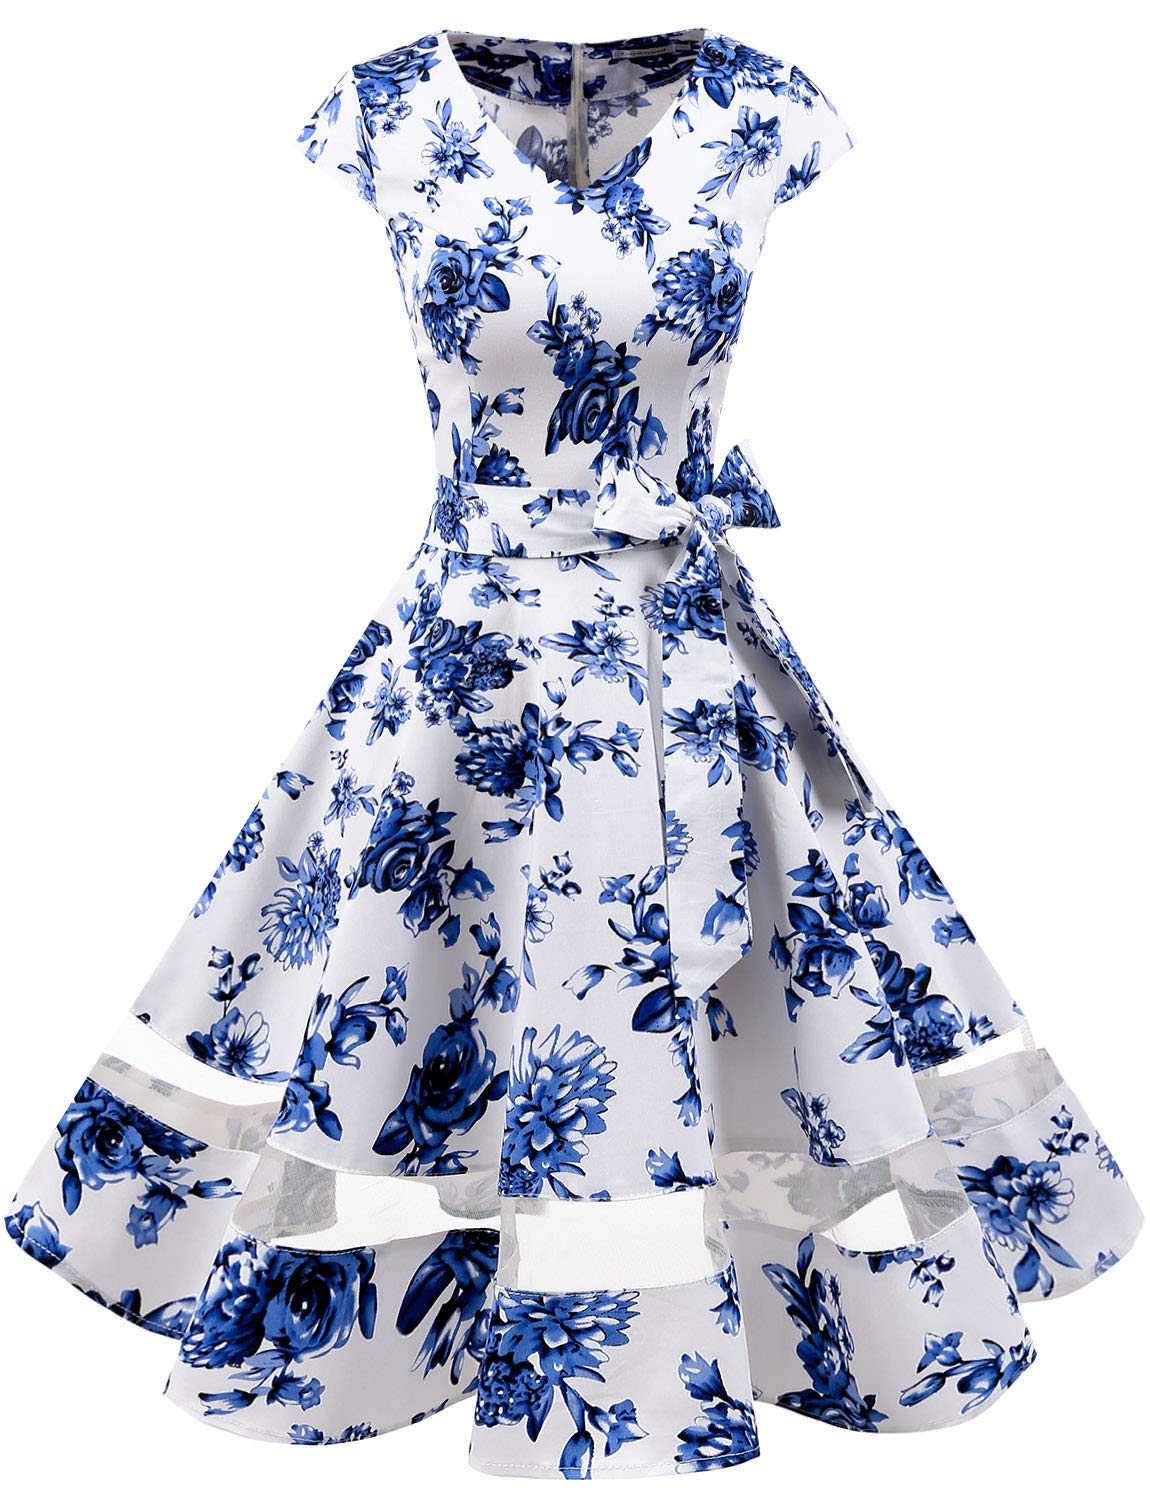 Available at Amazon: Gardenwed Women's 1950s Rockabilly Cocktail Party Dress Retro Vintage Swing Dress Cap-Sleeve V Neck